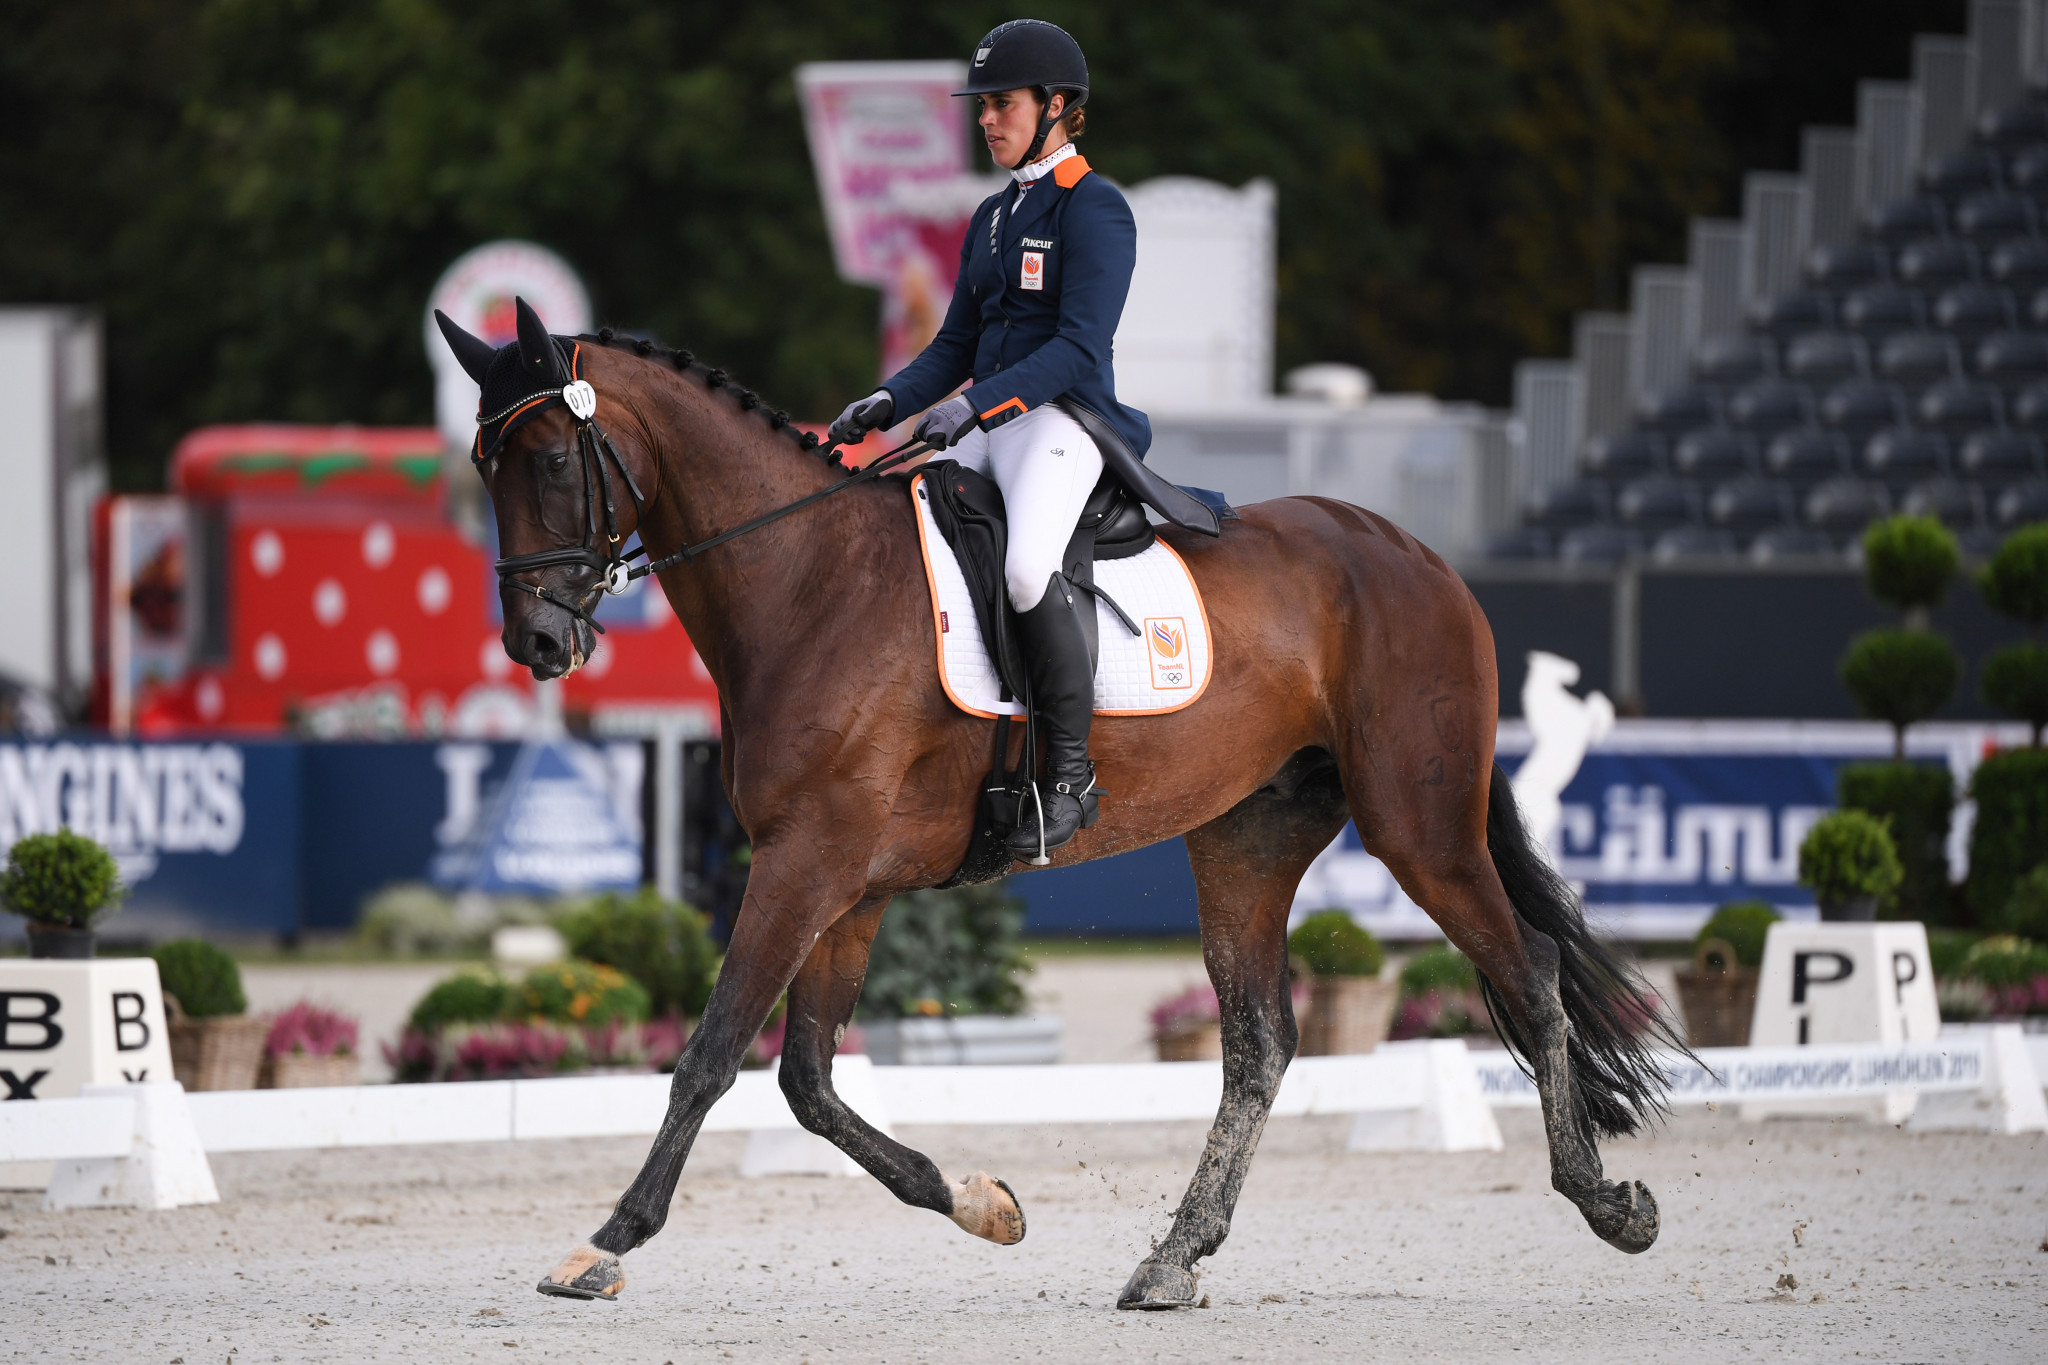 Blom and Redele joint leaders in dressage at FEI Nations Cup Eventing